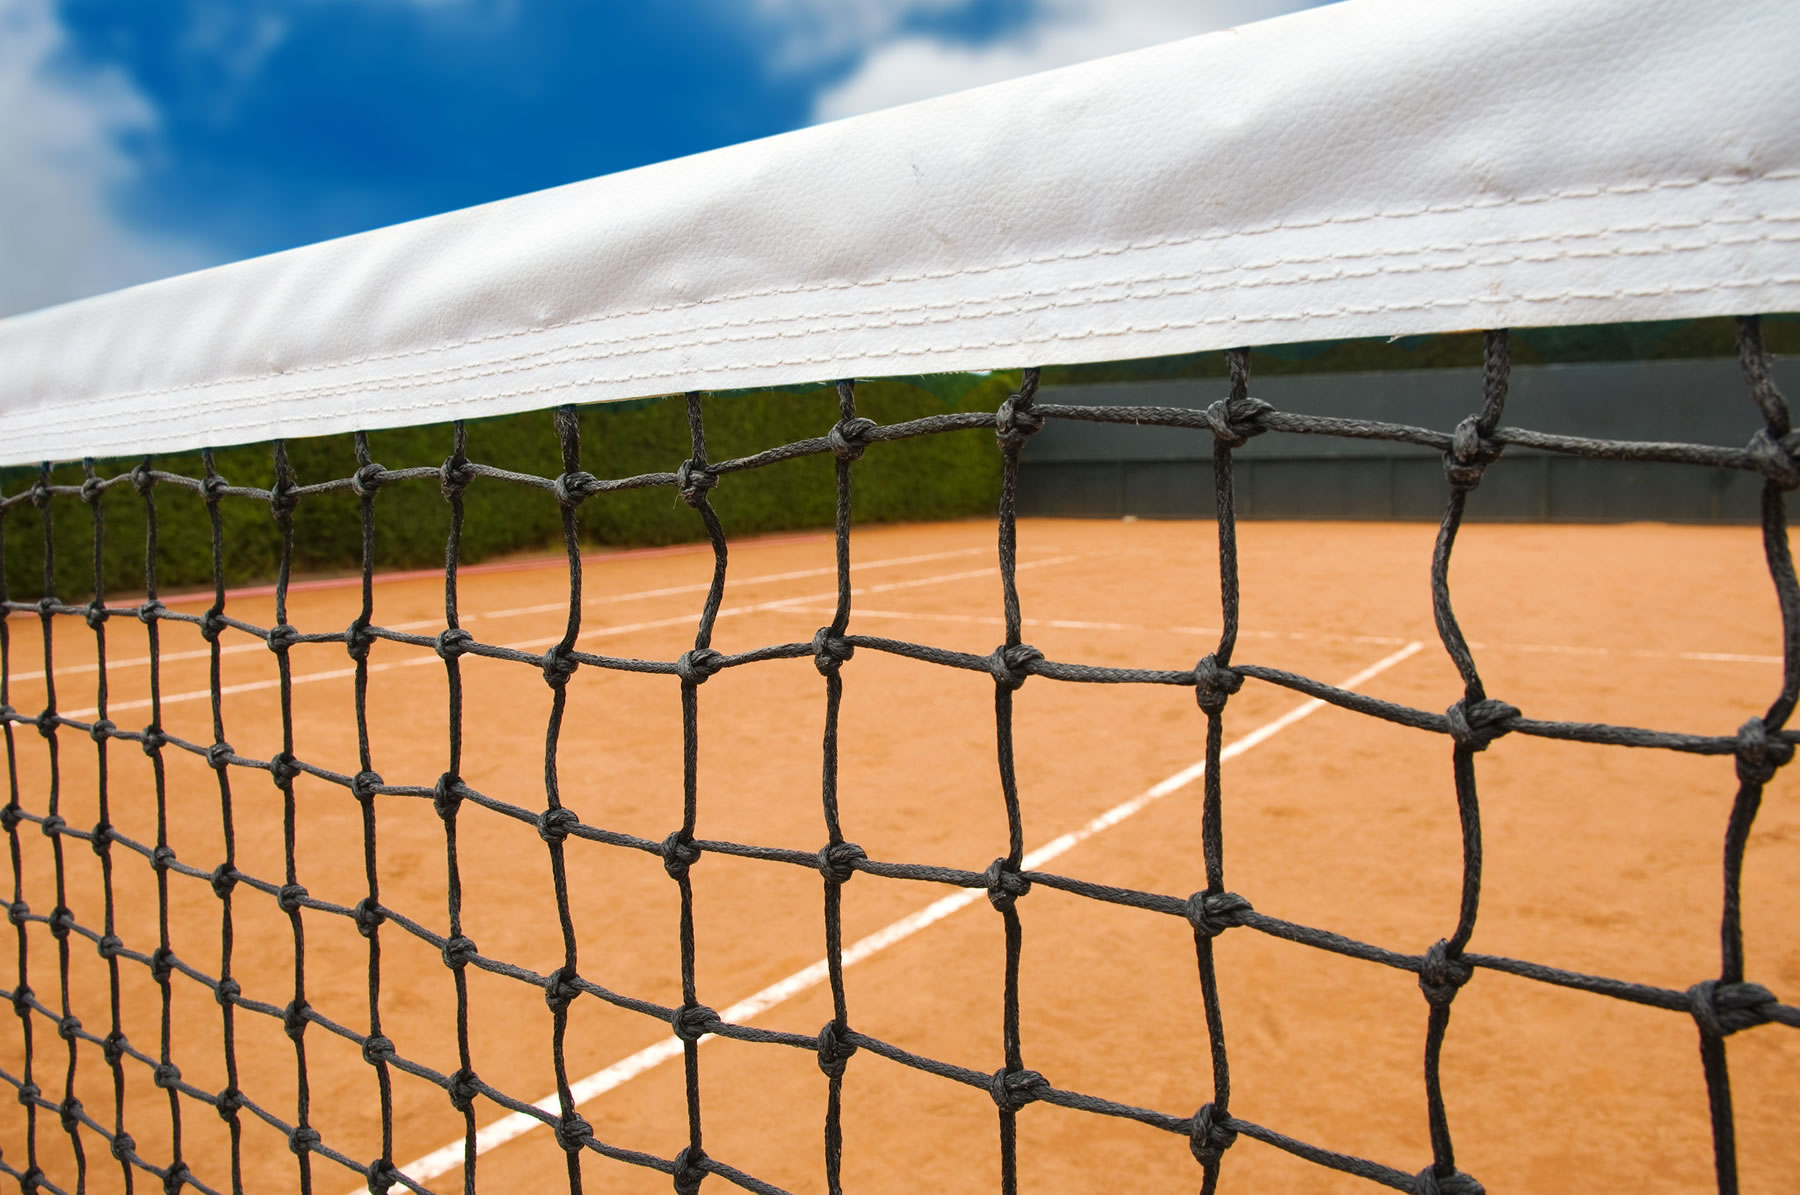 Tennis lessons in Weybridge for children 4 years and older